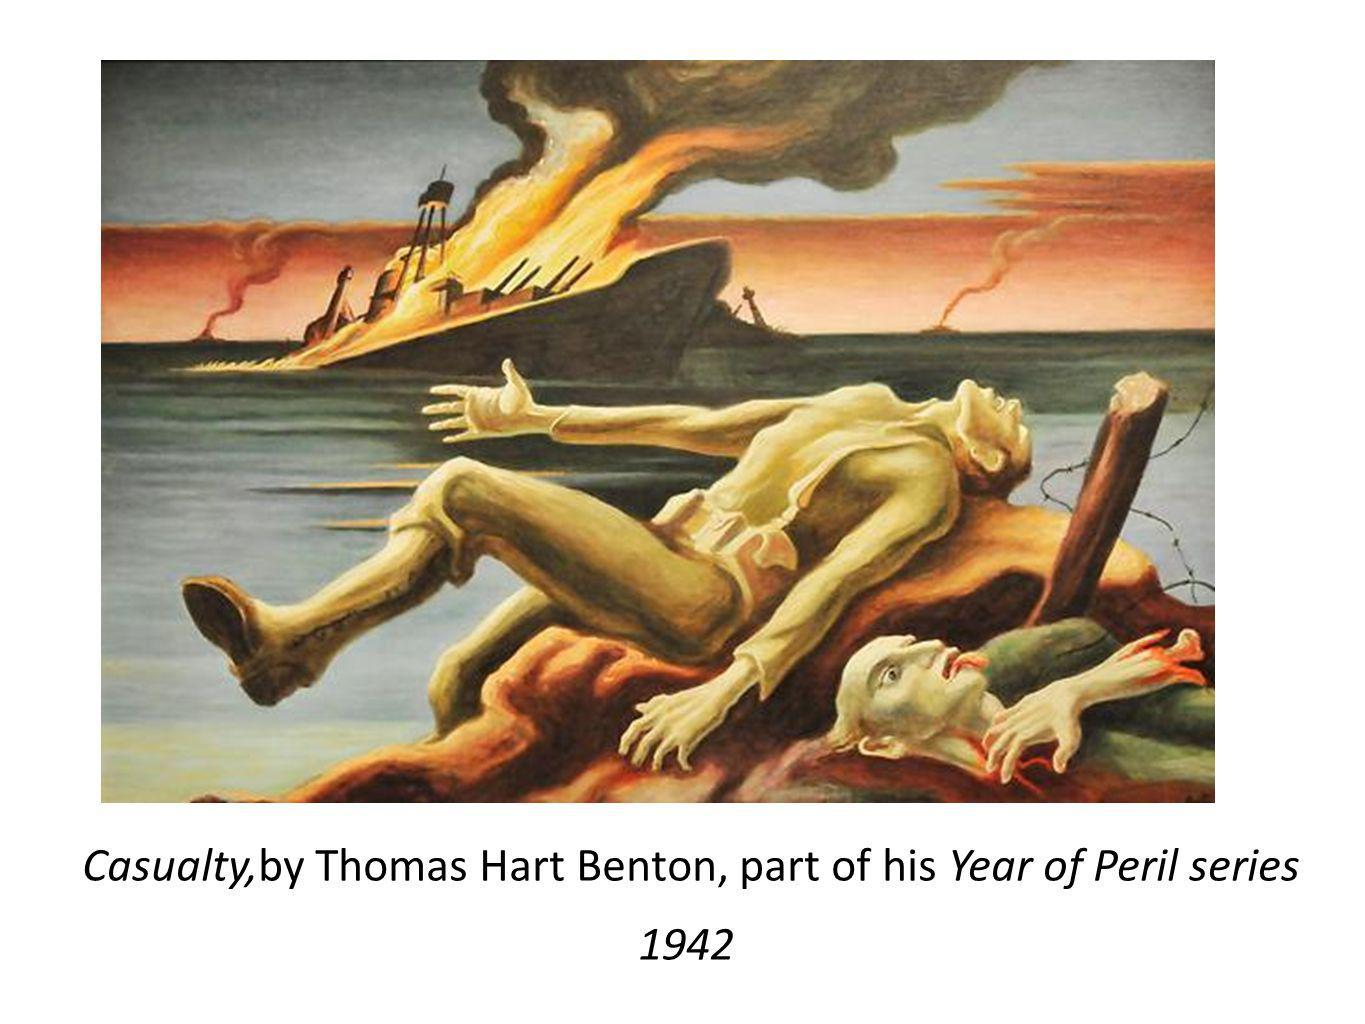 Casualty,by Thomas Hart Benton, part of his Year of Peril series 1942